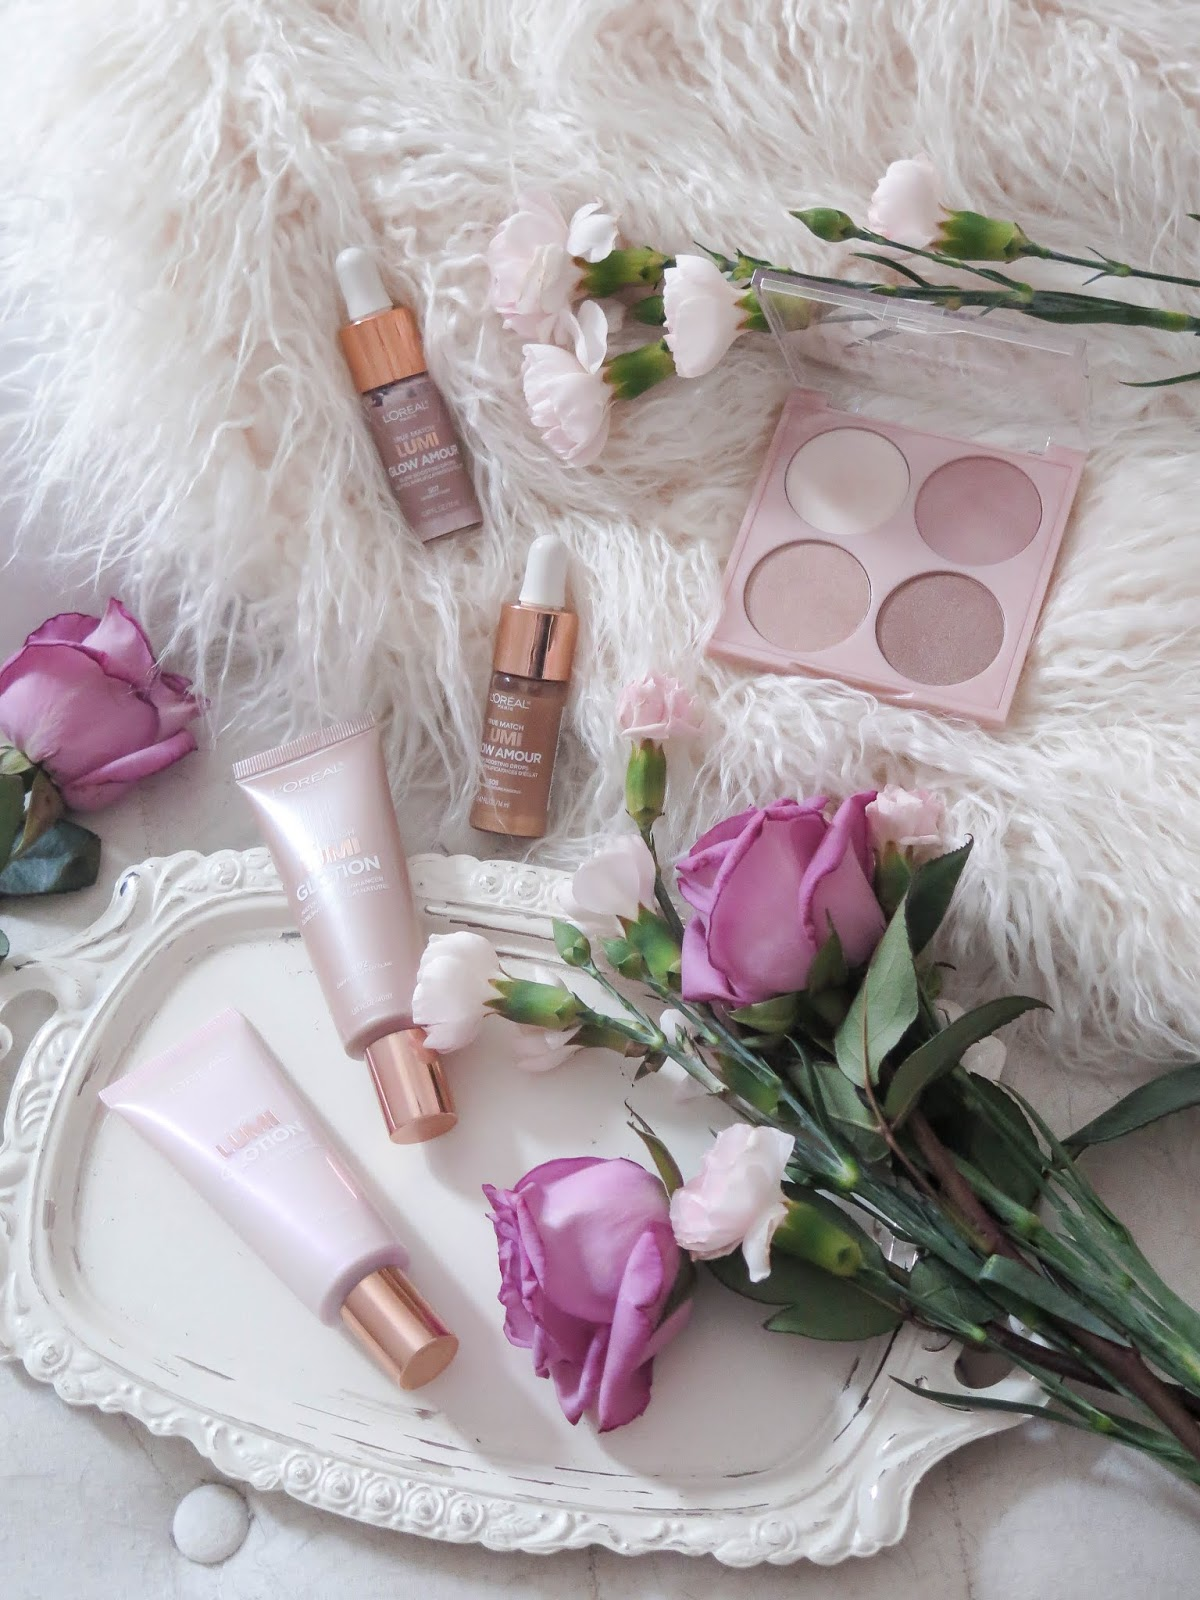 It's Glow Time In No Time | L'Oreal Paris True Match Lumi Glow Collection | Review & Swatches | labellesirene.ca